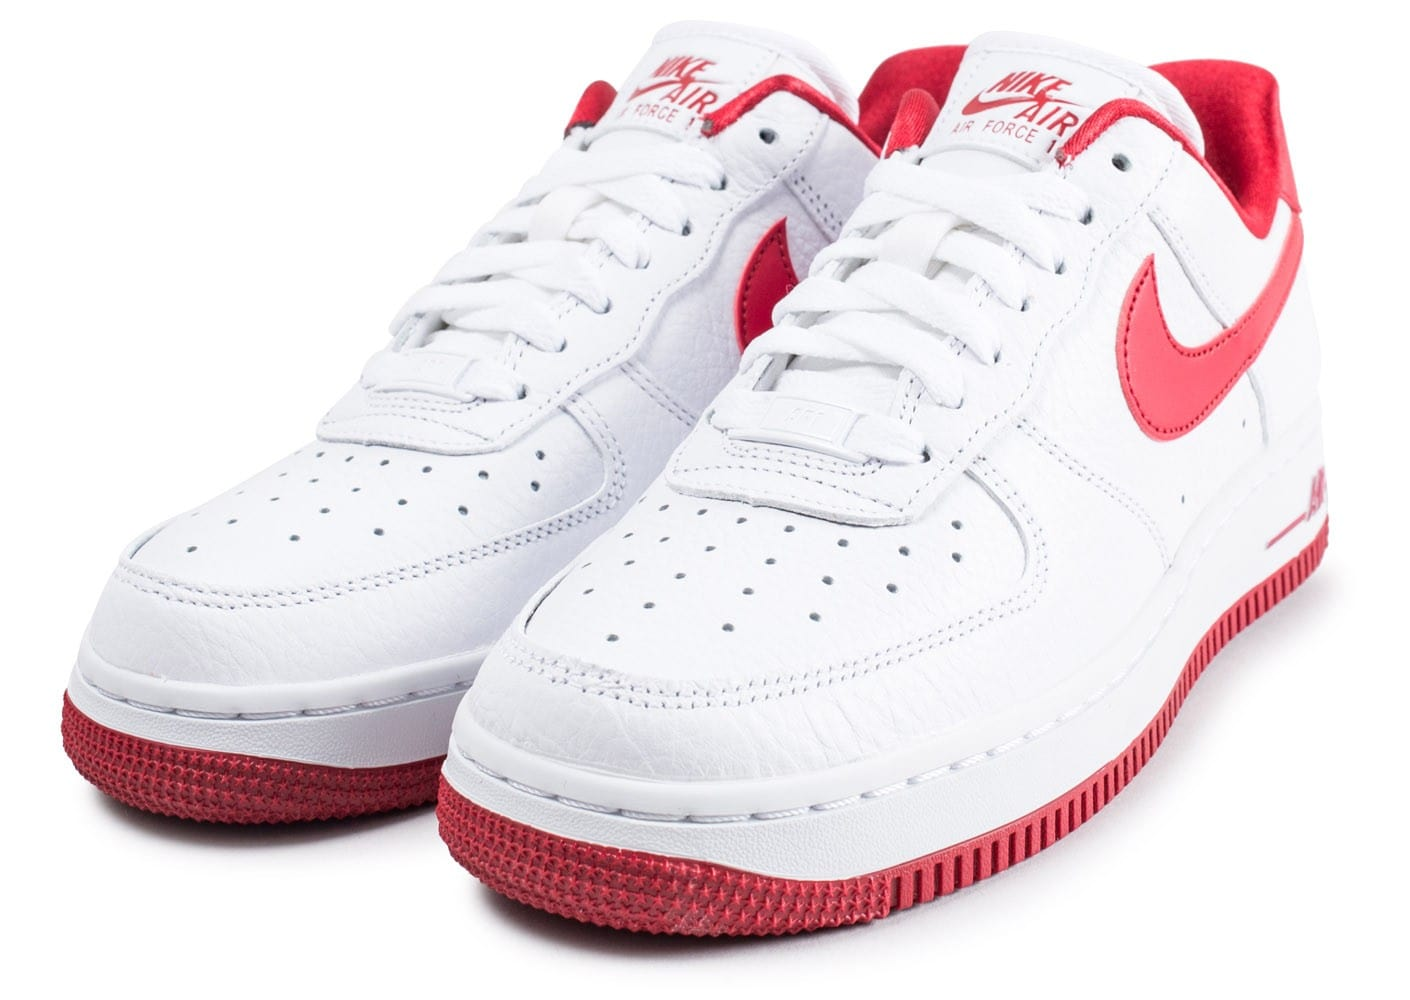 nike air force 1 low blanche et rouge chaussures baskets. Black Bedroom Furniture Sets. Home Design Ideas